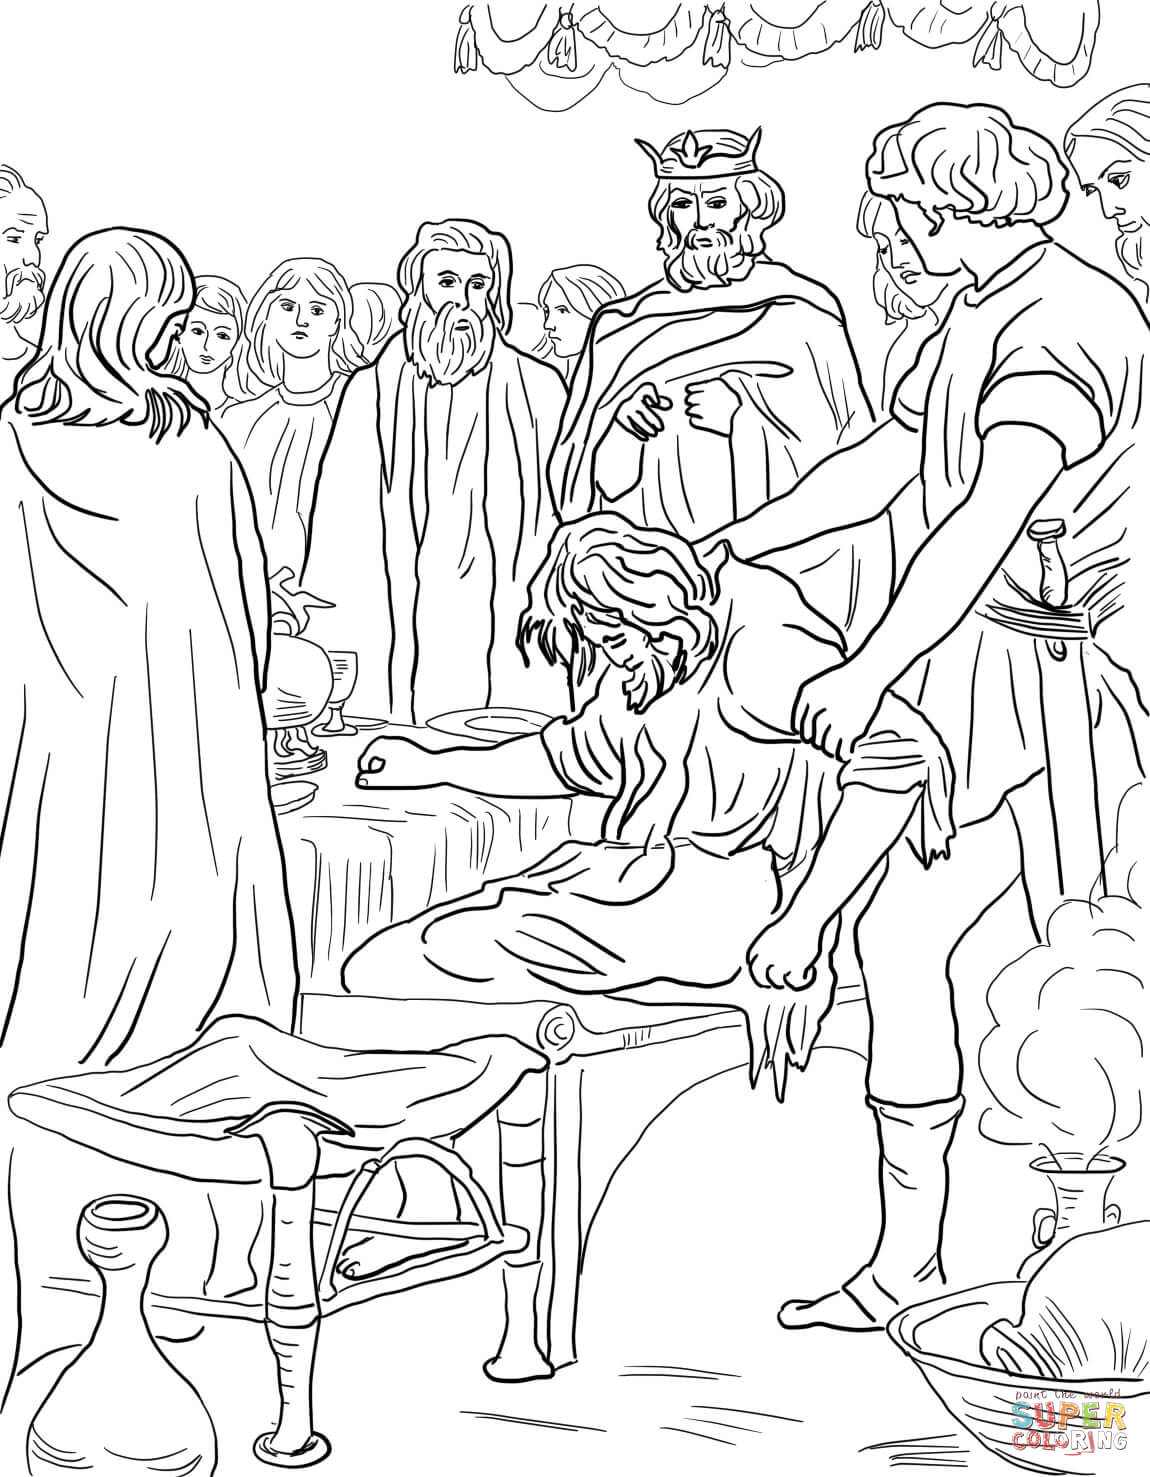 Great Banquet Parable Of The Worksheet | Printable Worksheets and  Activities for Teachers, Parents, Tutors and Homeschool Families